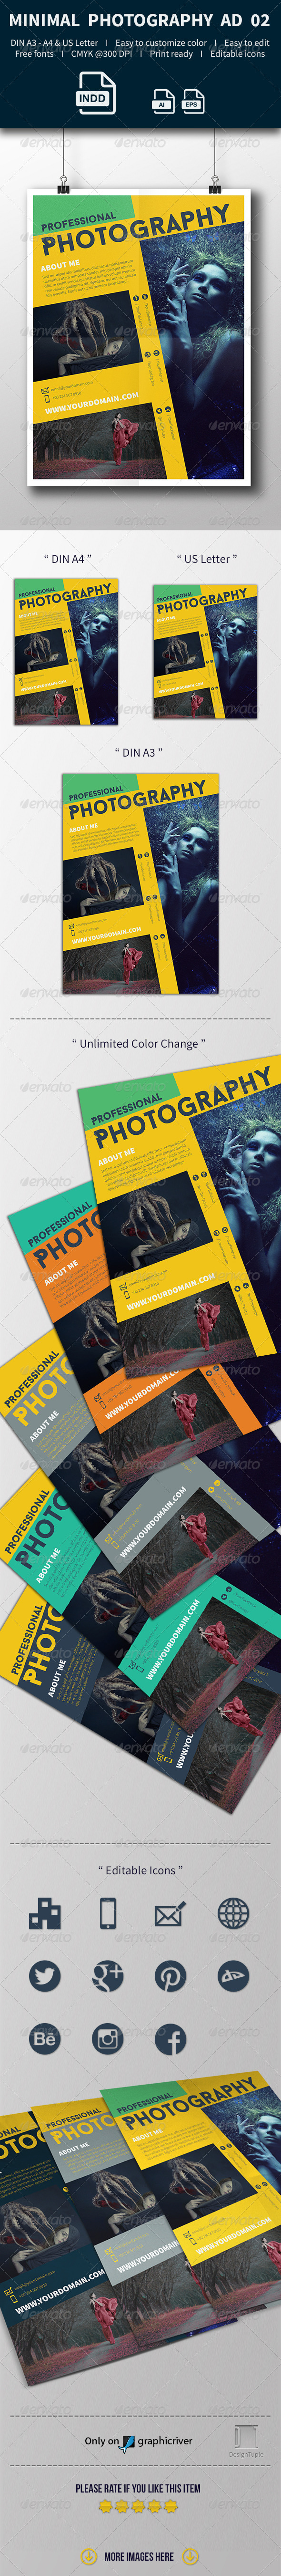 GraphicRiver Get Minimal Photography Ad Template 02 8021331